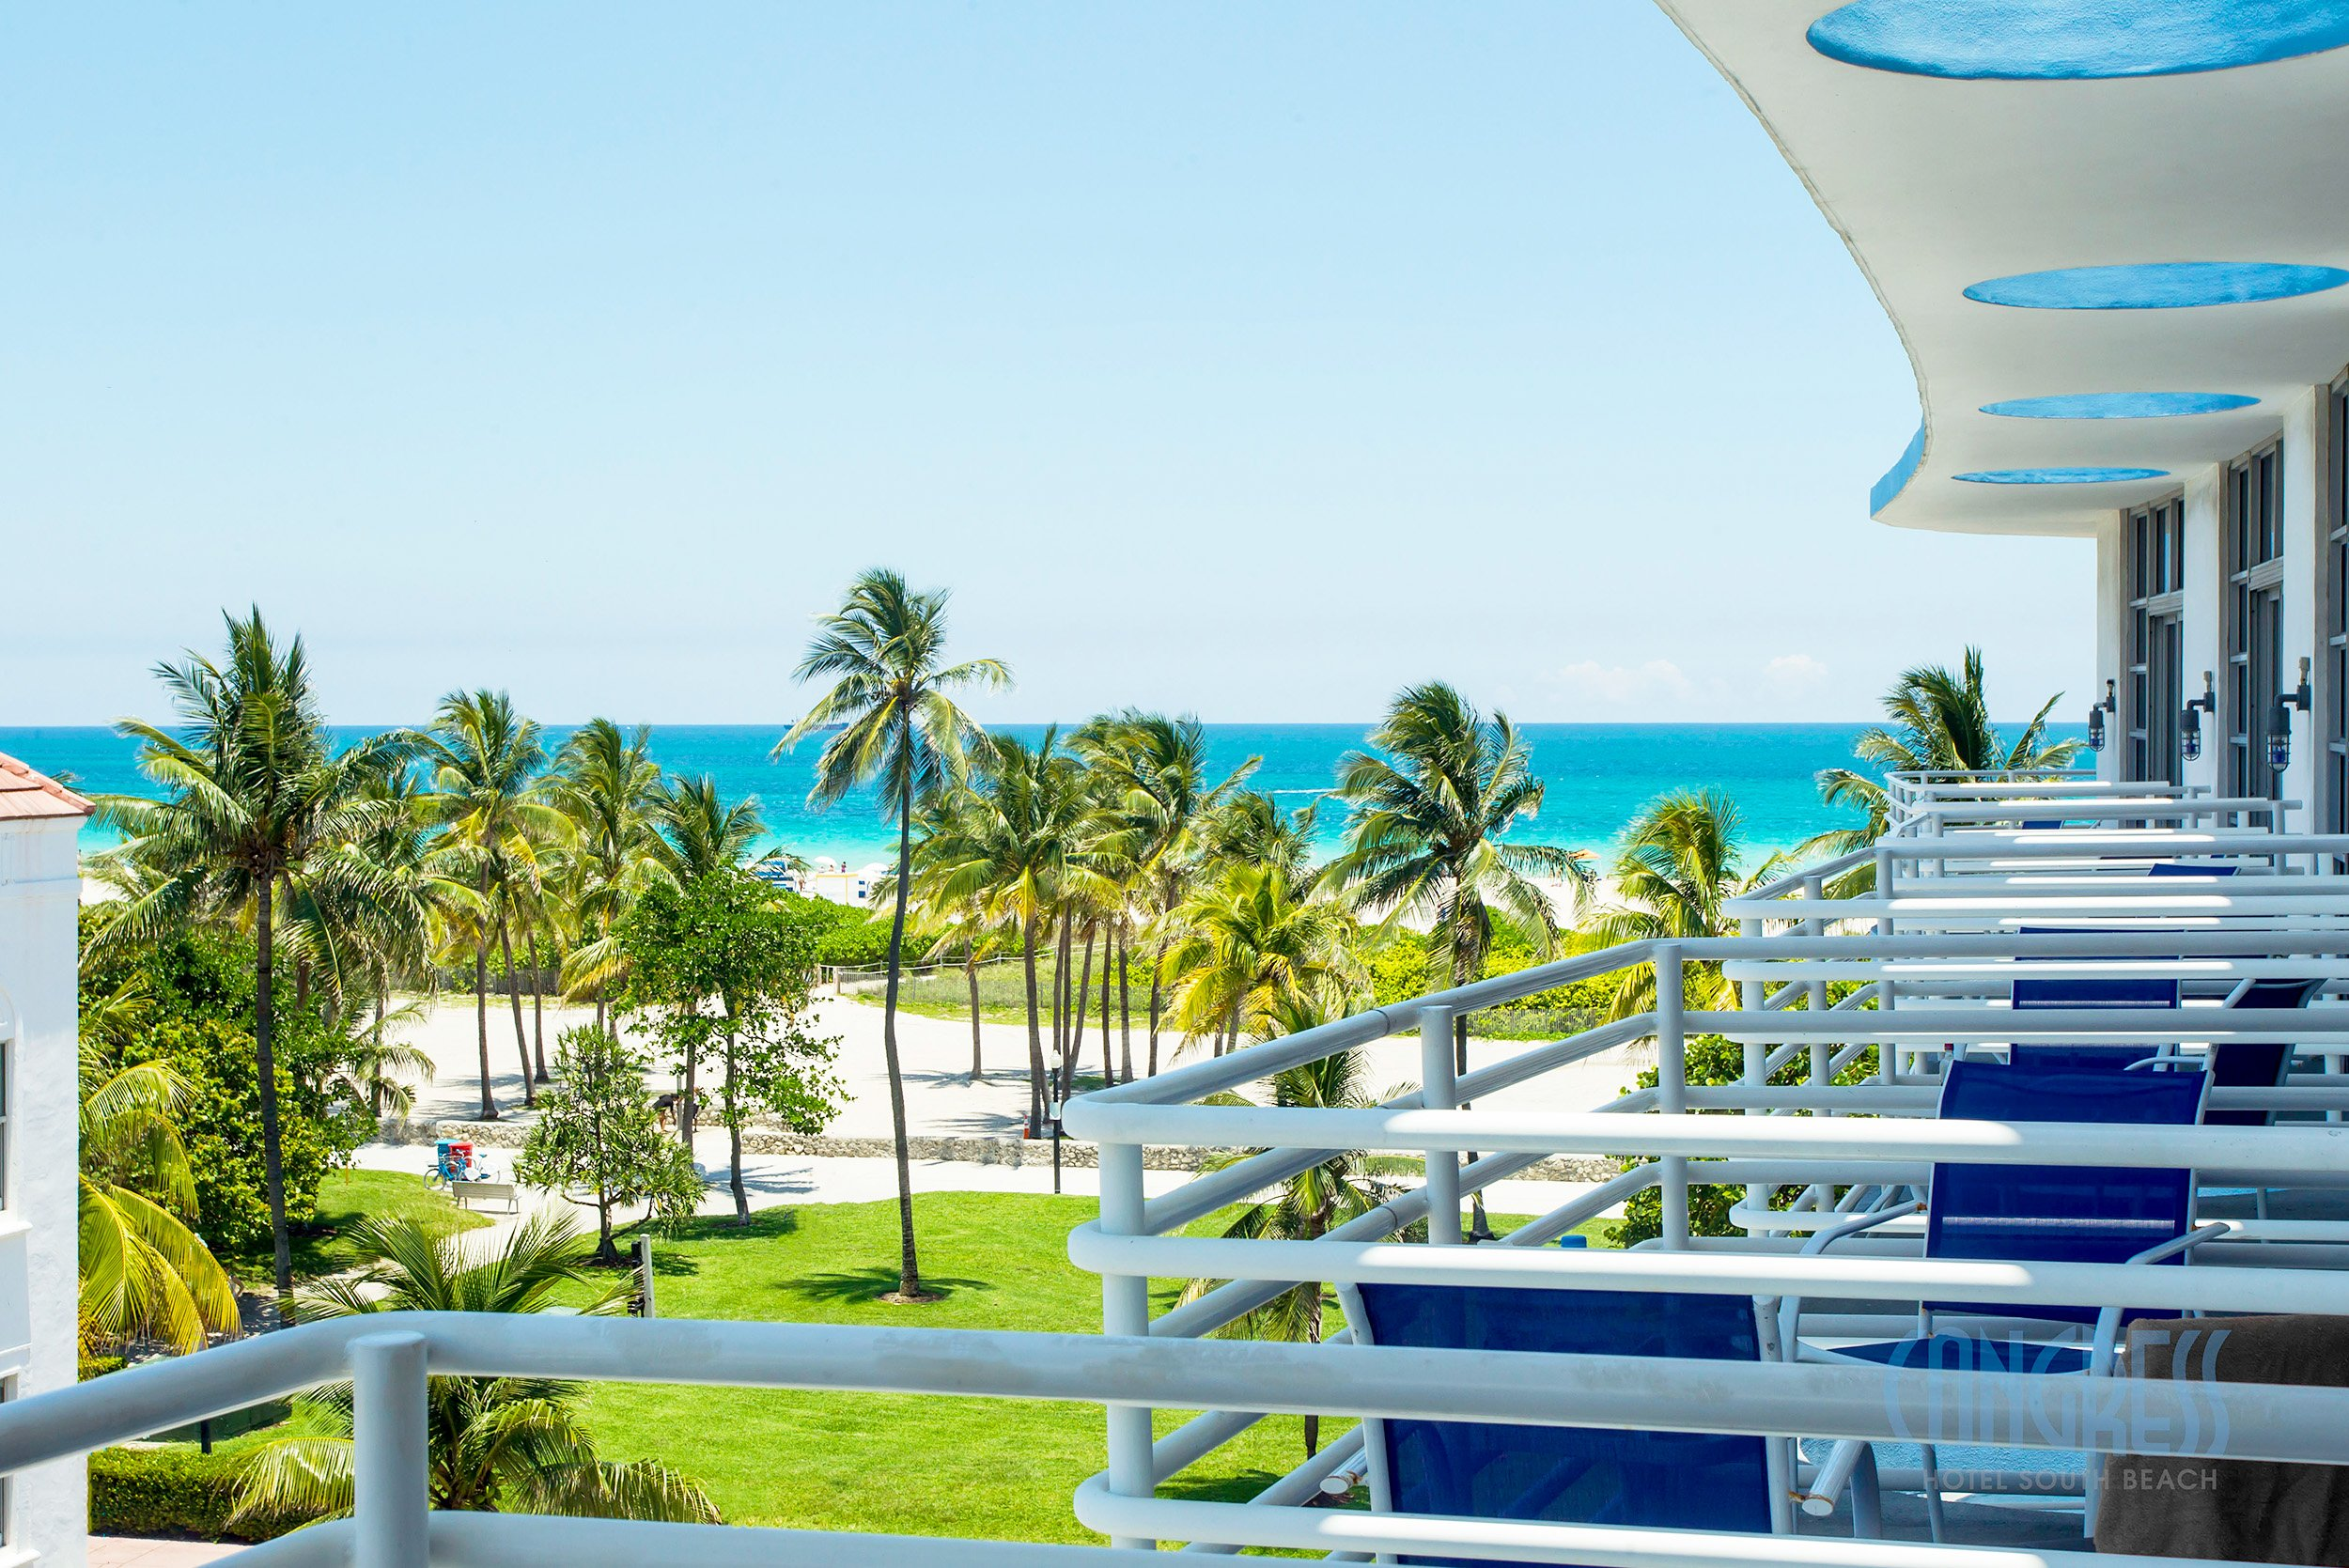 z ocean south beach luxury boutique hotel miami beach - 1000×666